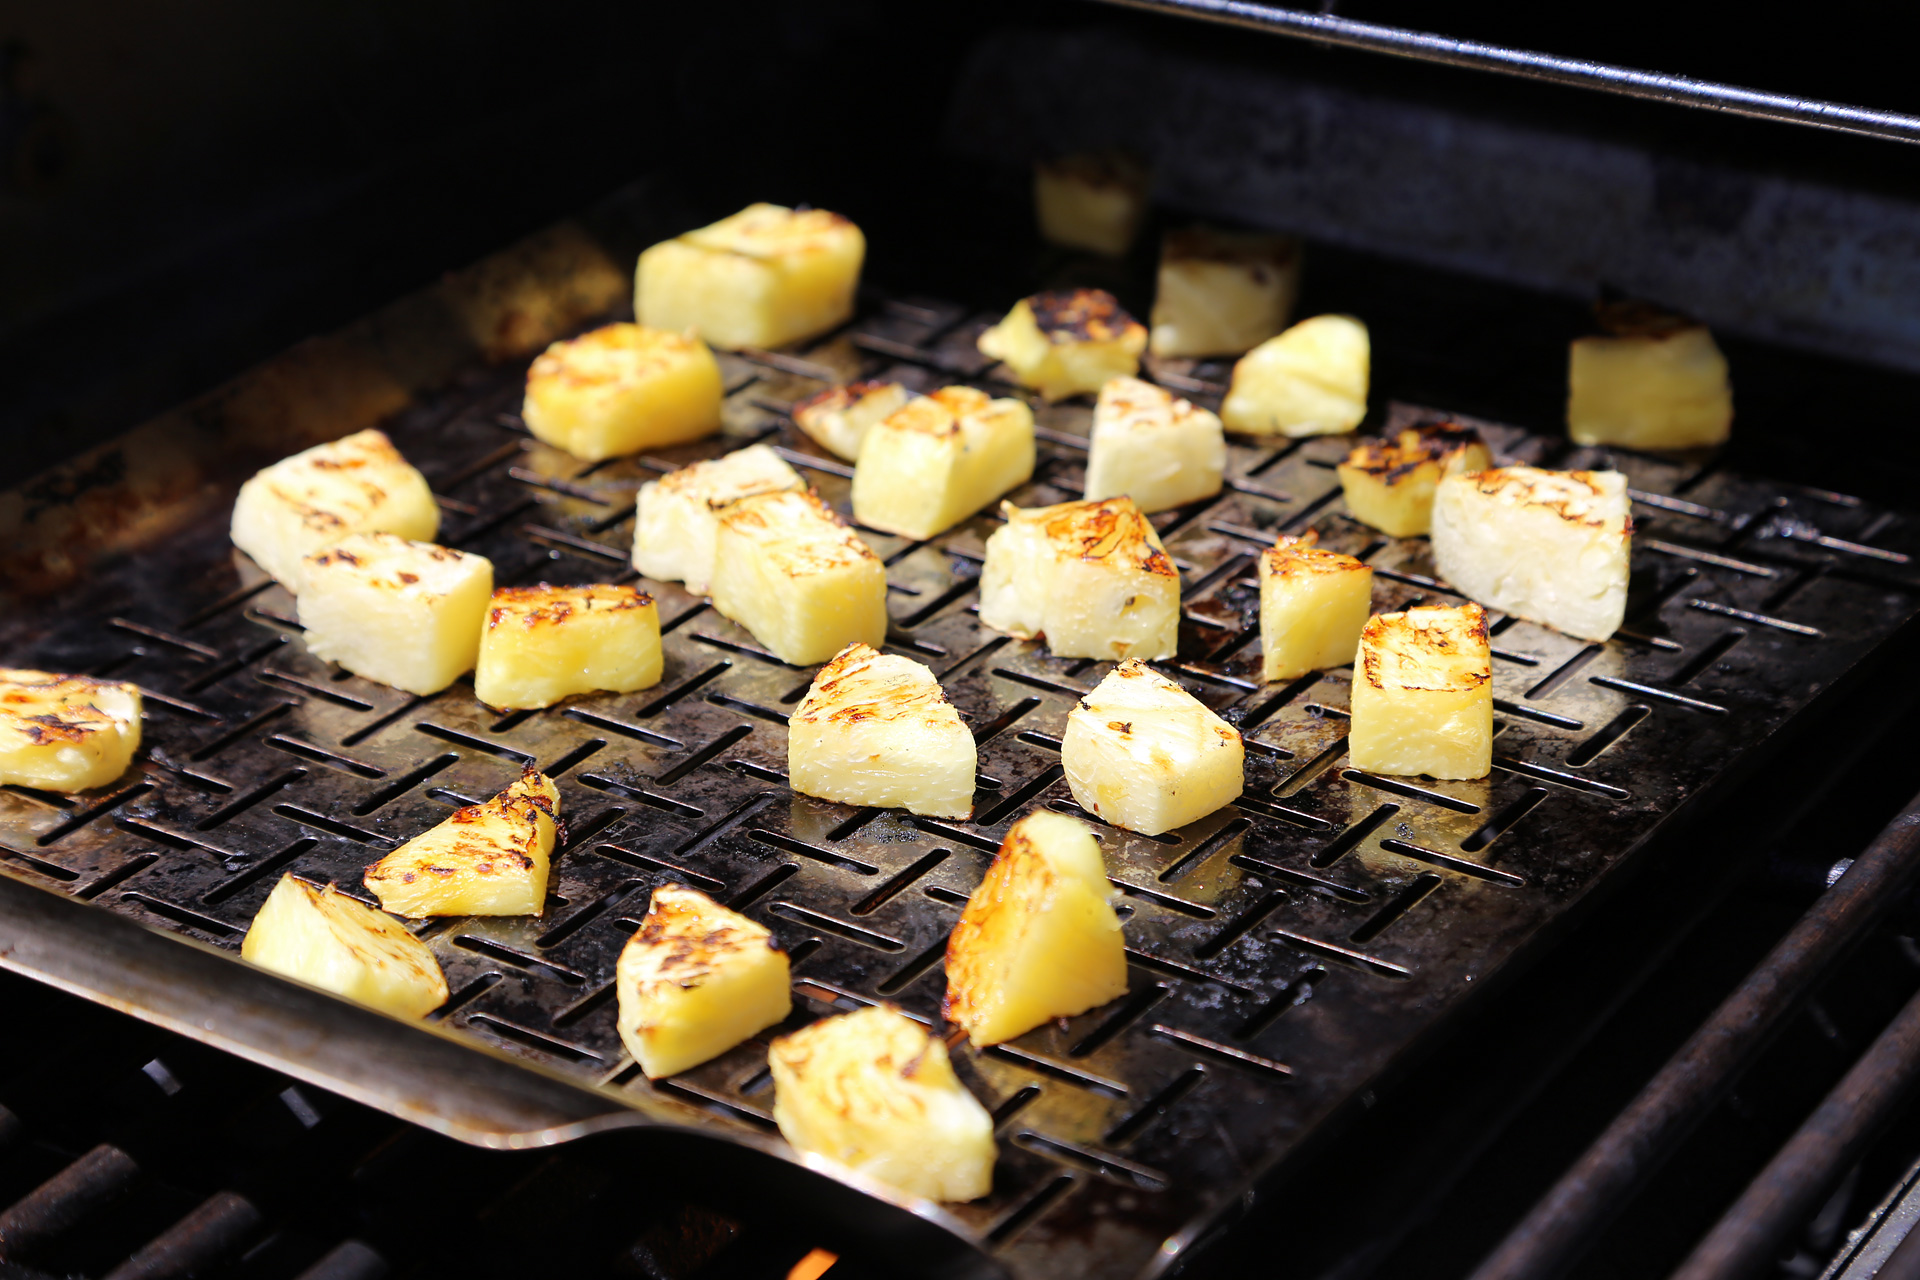 Using a perforated grill pan, grill the pineapple over direct heat until charred, about 7 minutes.